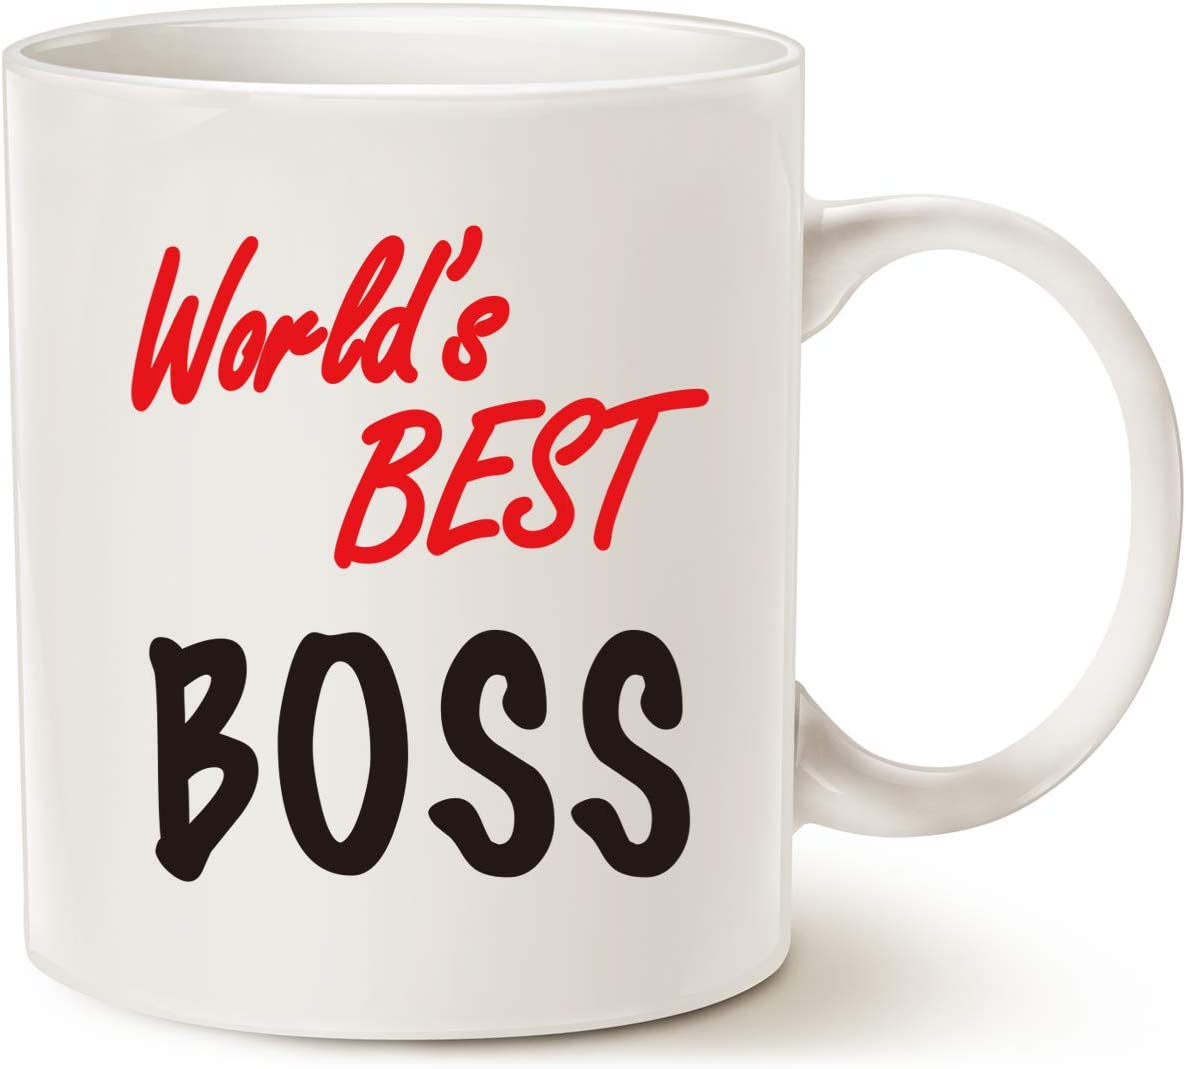 Amazon Com Mauag World S Best Boss Funny Coffee Mug For Boss Day White 11 Oz Work And Office Holiday Or Birthday Present For Worlds Best Male Or Female Bosses Manager Kitchen Dining